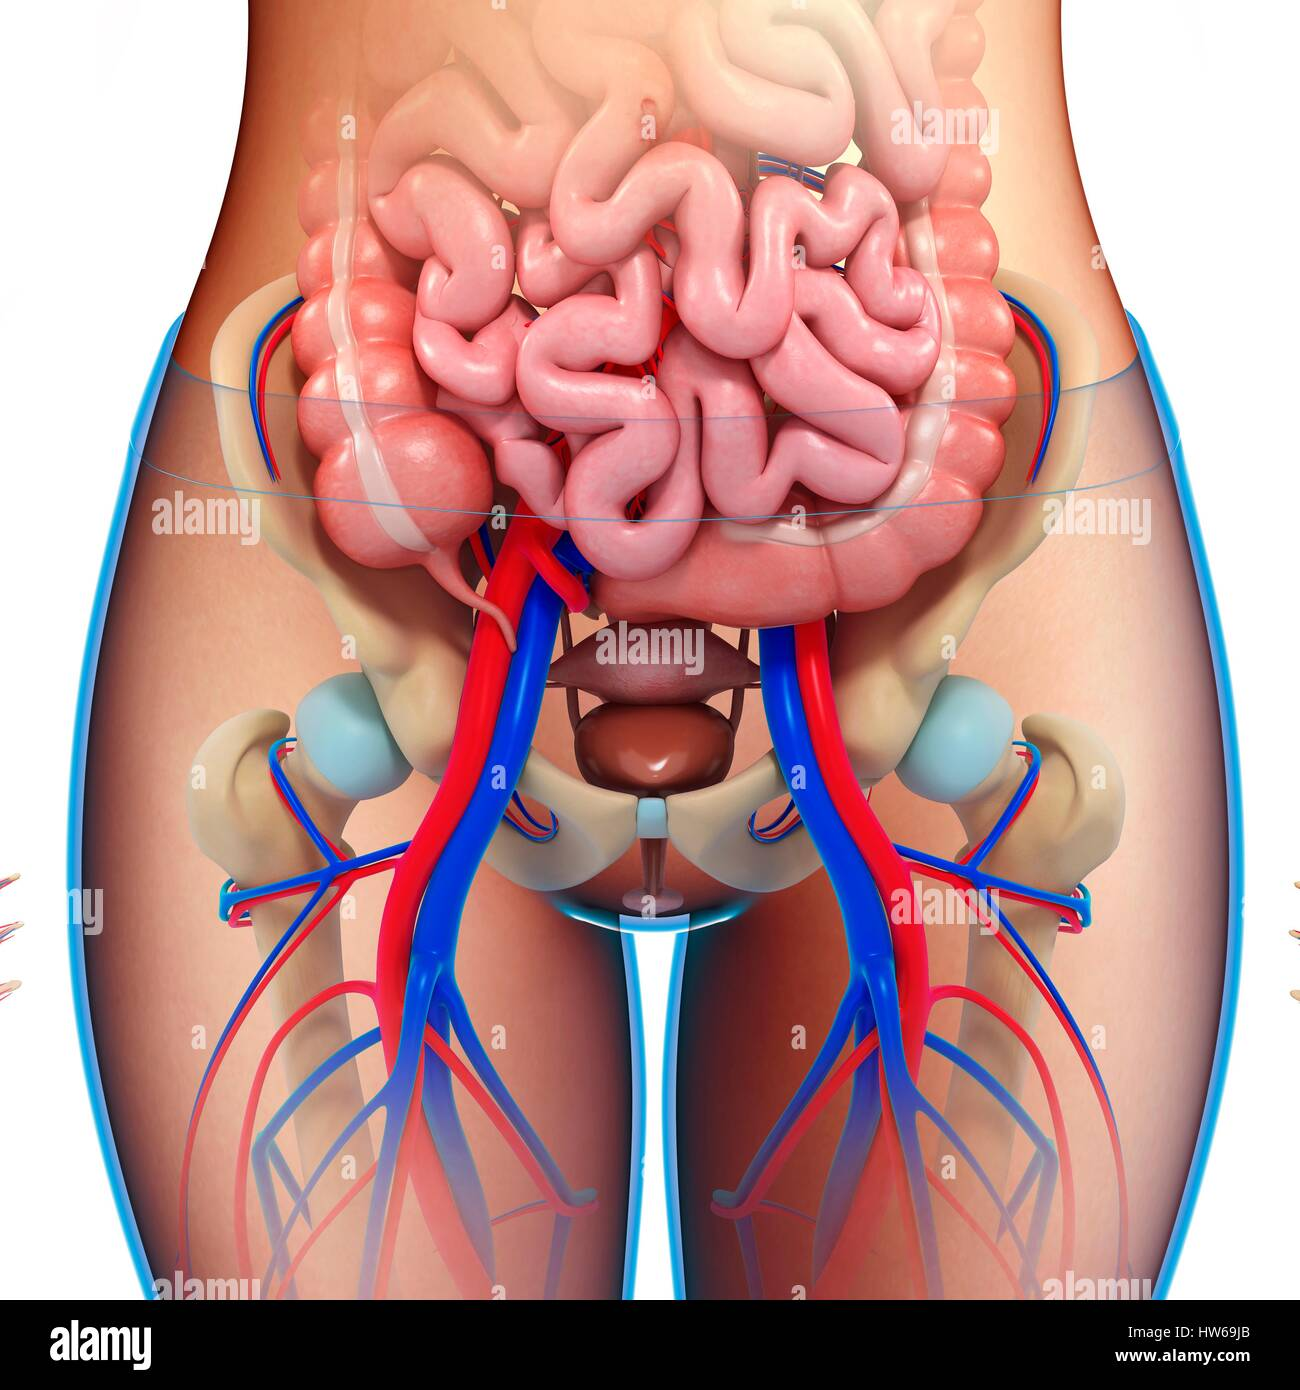 Illustration Of Female Pelvic Anatomy Stock Photo 135978259 Alamy